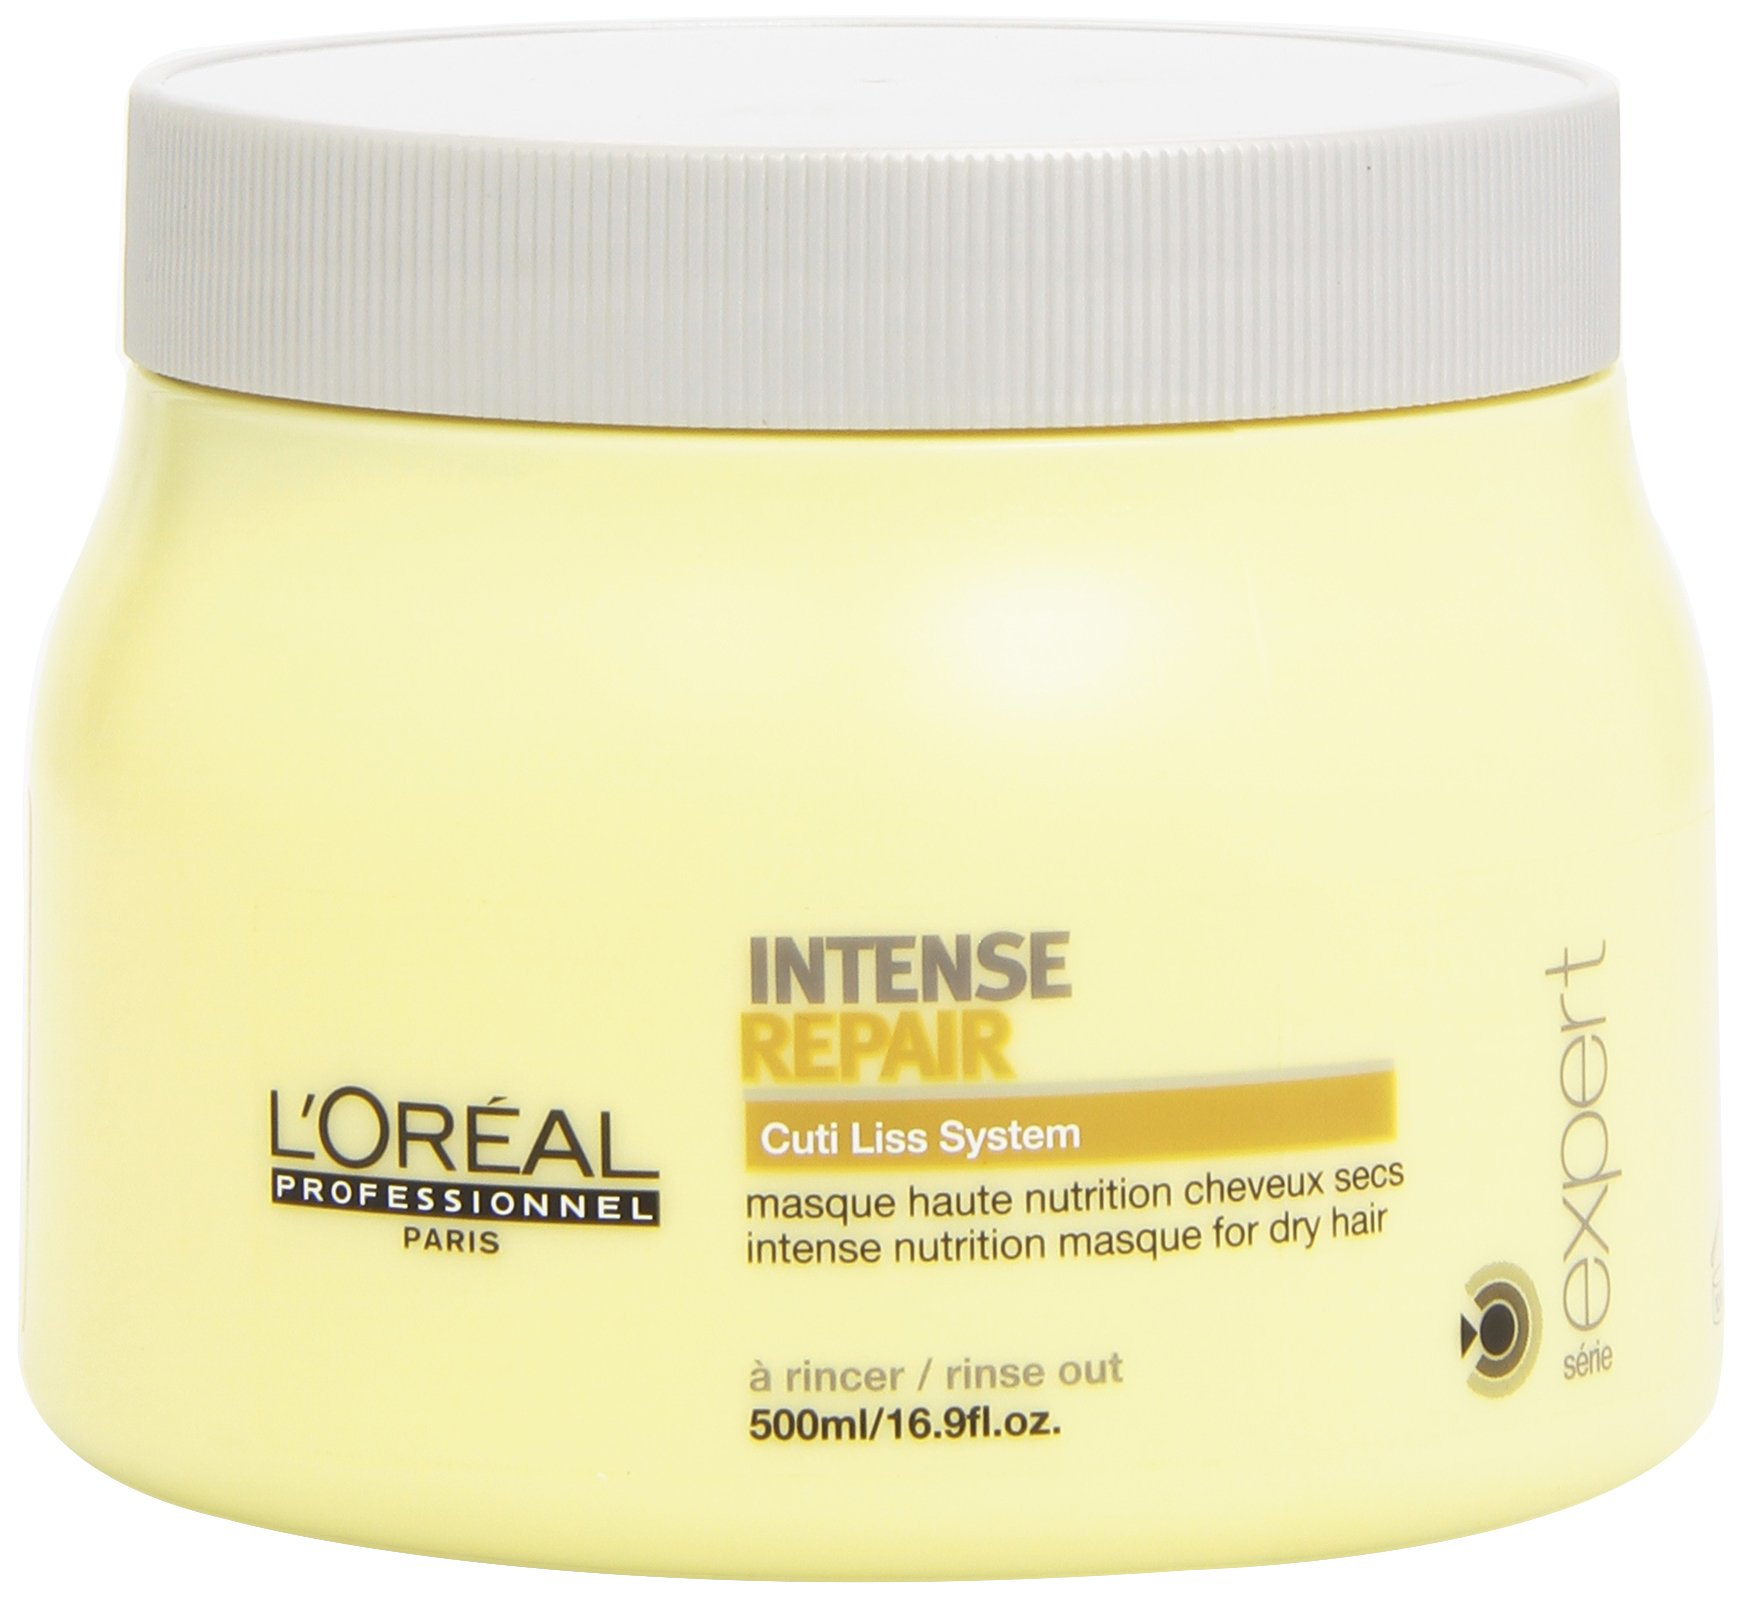 L'oreal Intense Repair Masque for Unisex, 16.9 Ounce